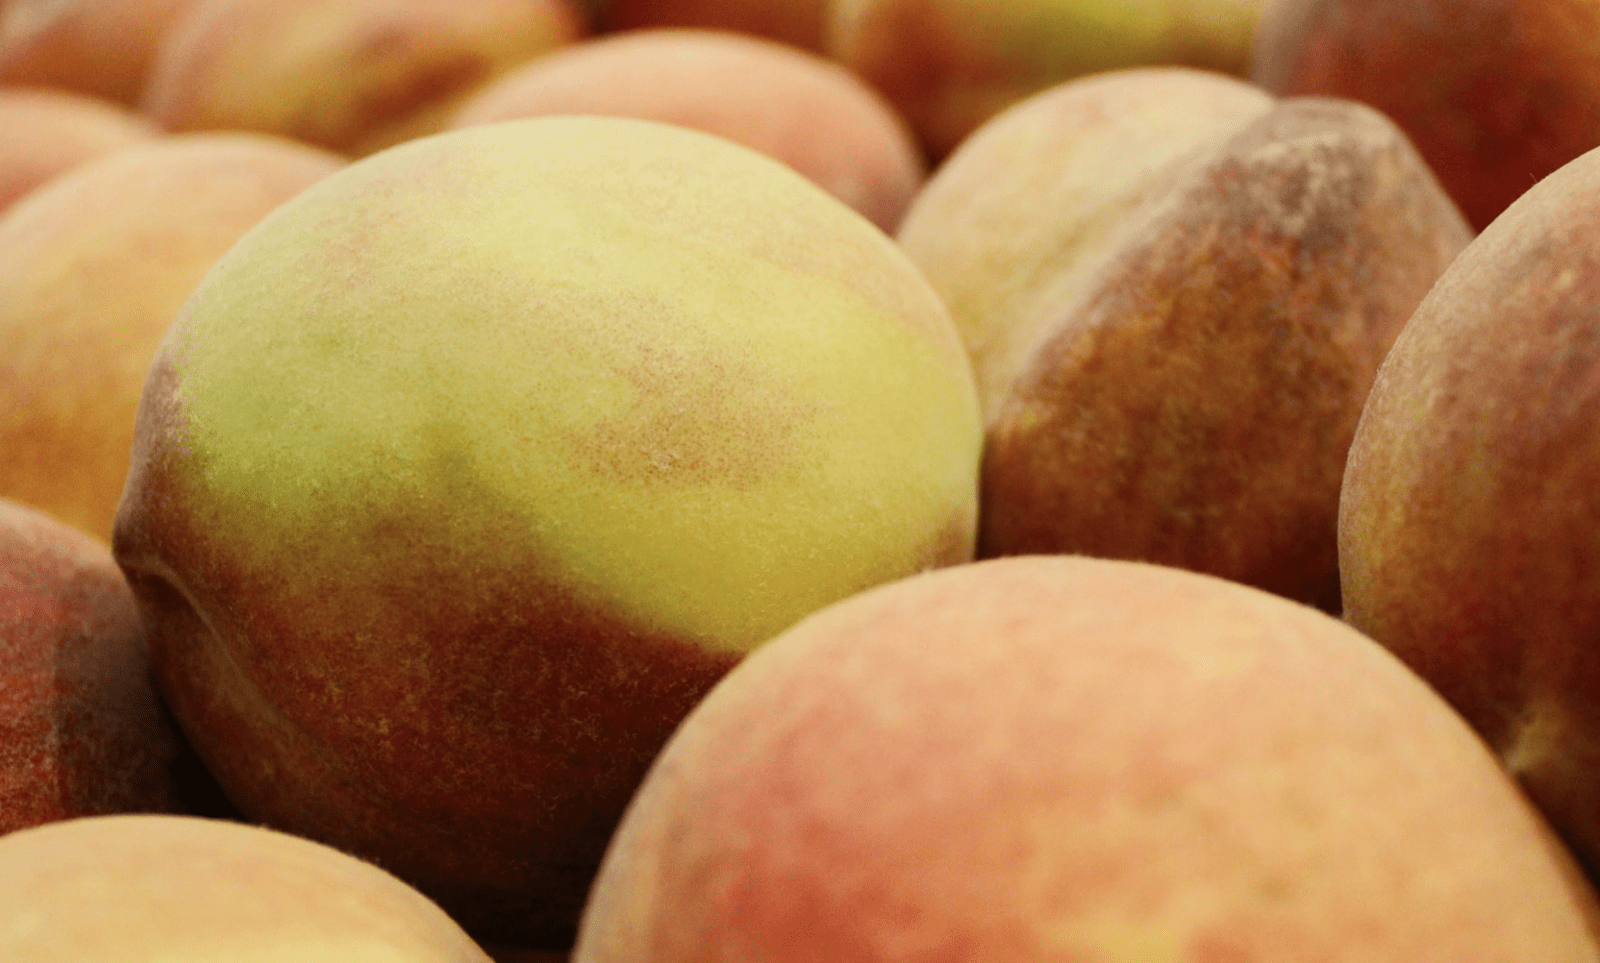 Peaches Recalled Following Salmonella Outbreak